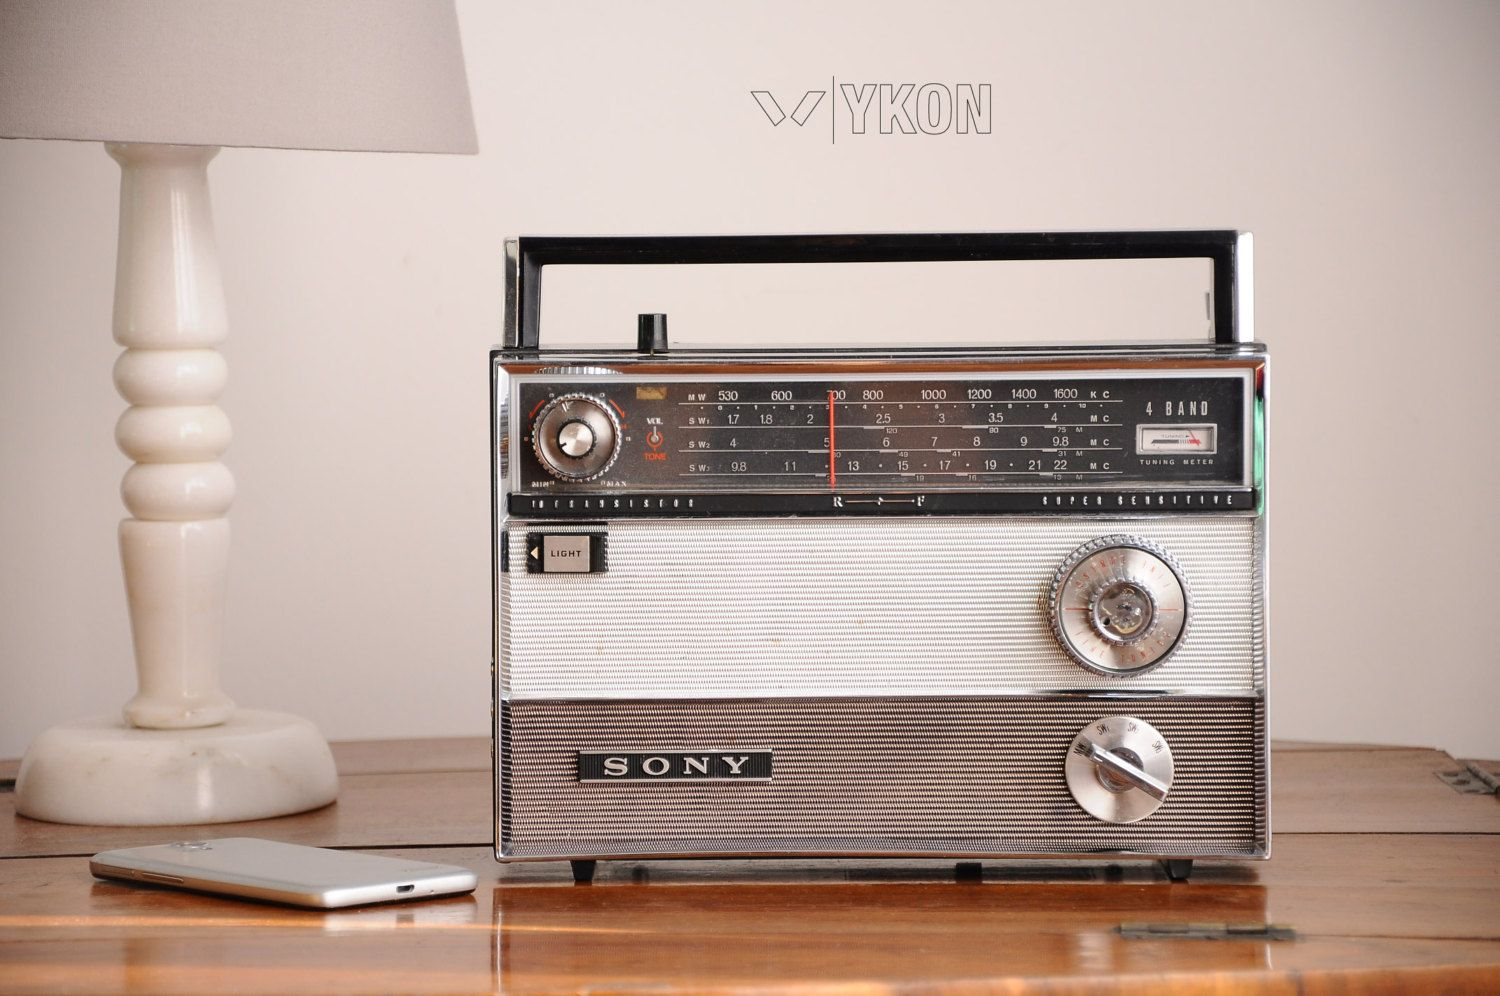 This Is An Old Sony Transistor Radio Converted To A Bluetooth Speaker With This Retro Radio Now You Can Listen Bluetooth Radio Bluetooth Speakers Retro Radios